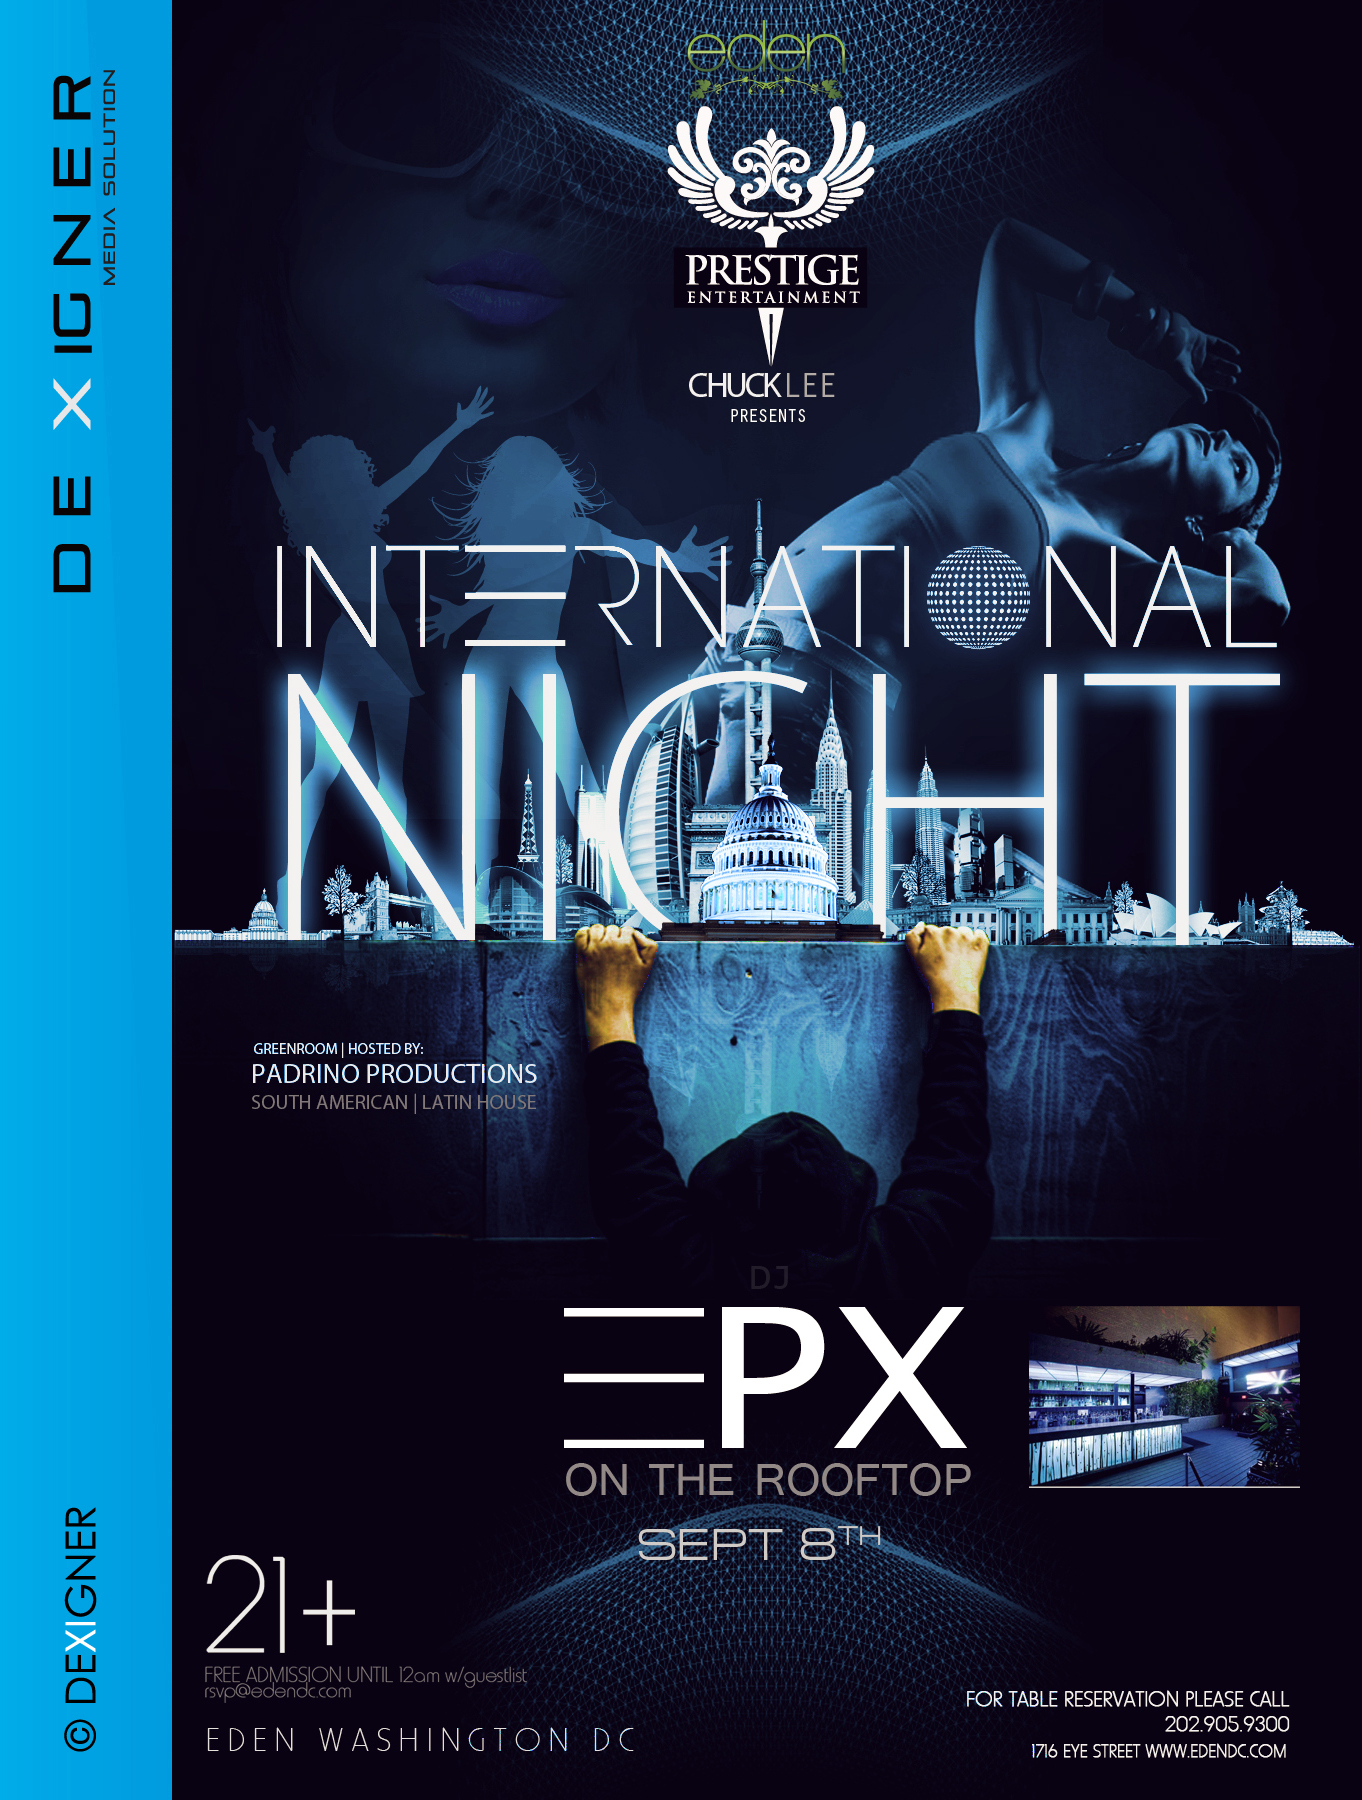 International Night Club Flyer Design by DeXigner-Ms on DeviantArt